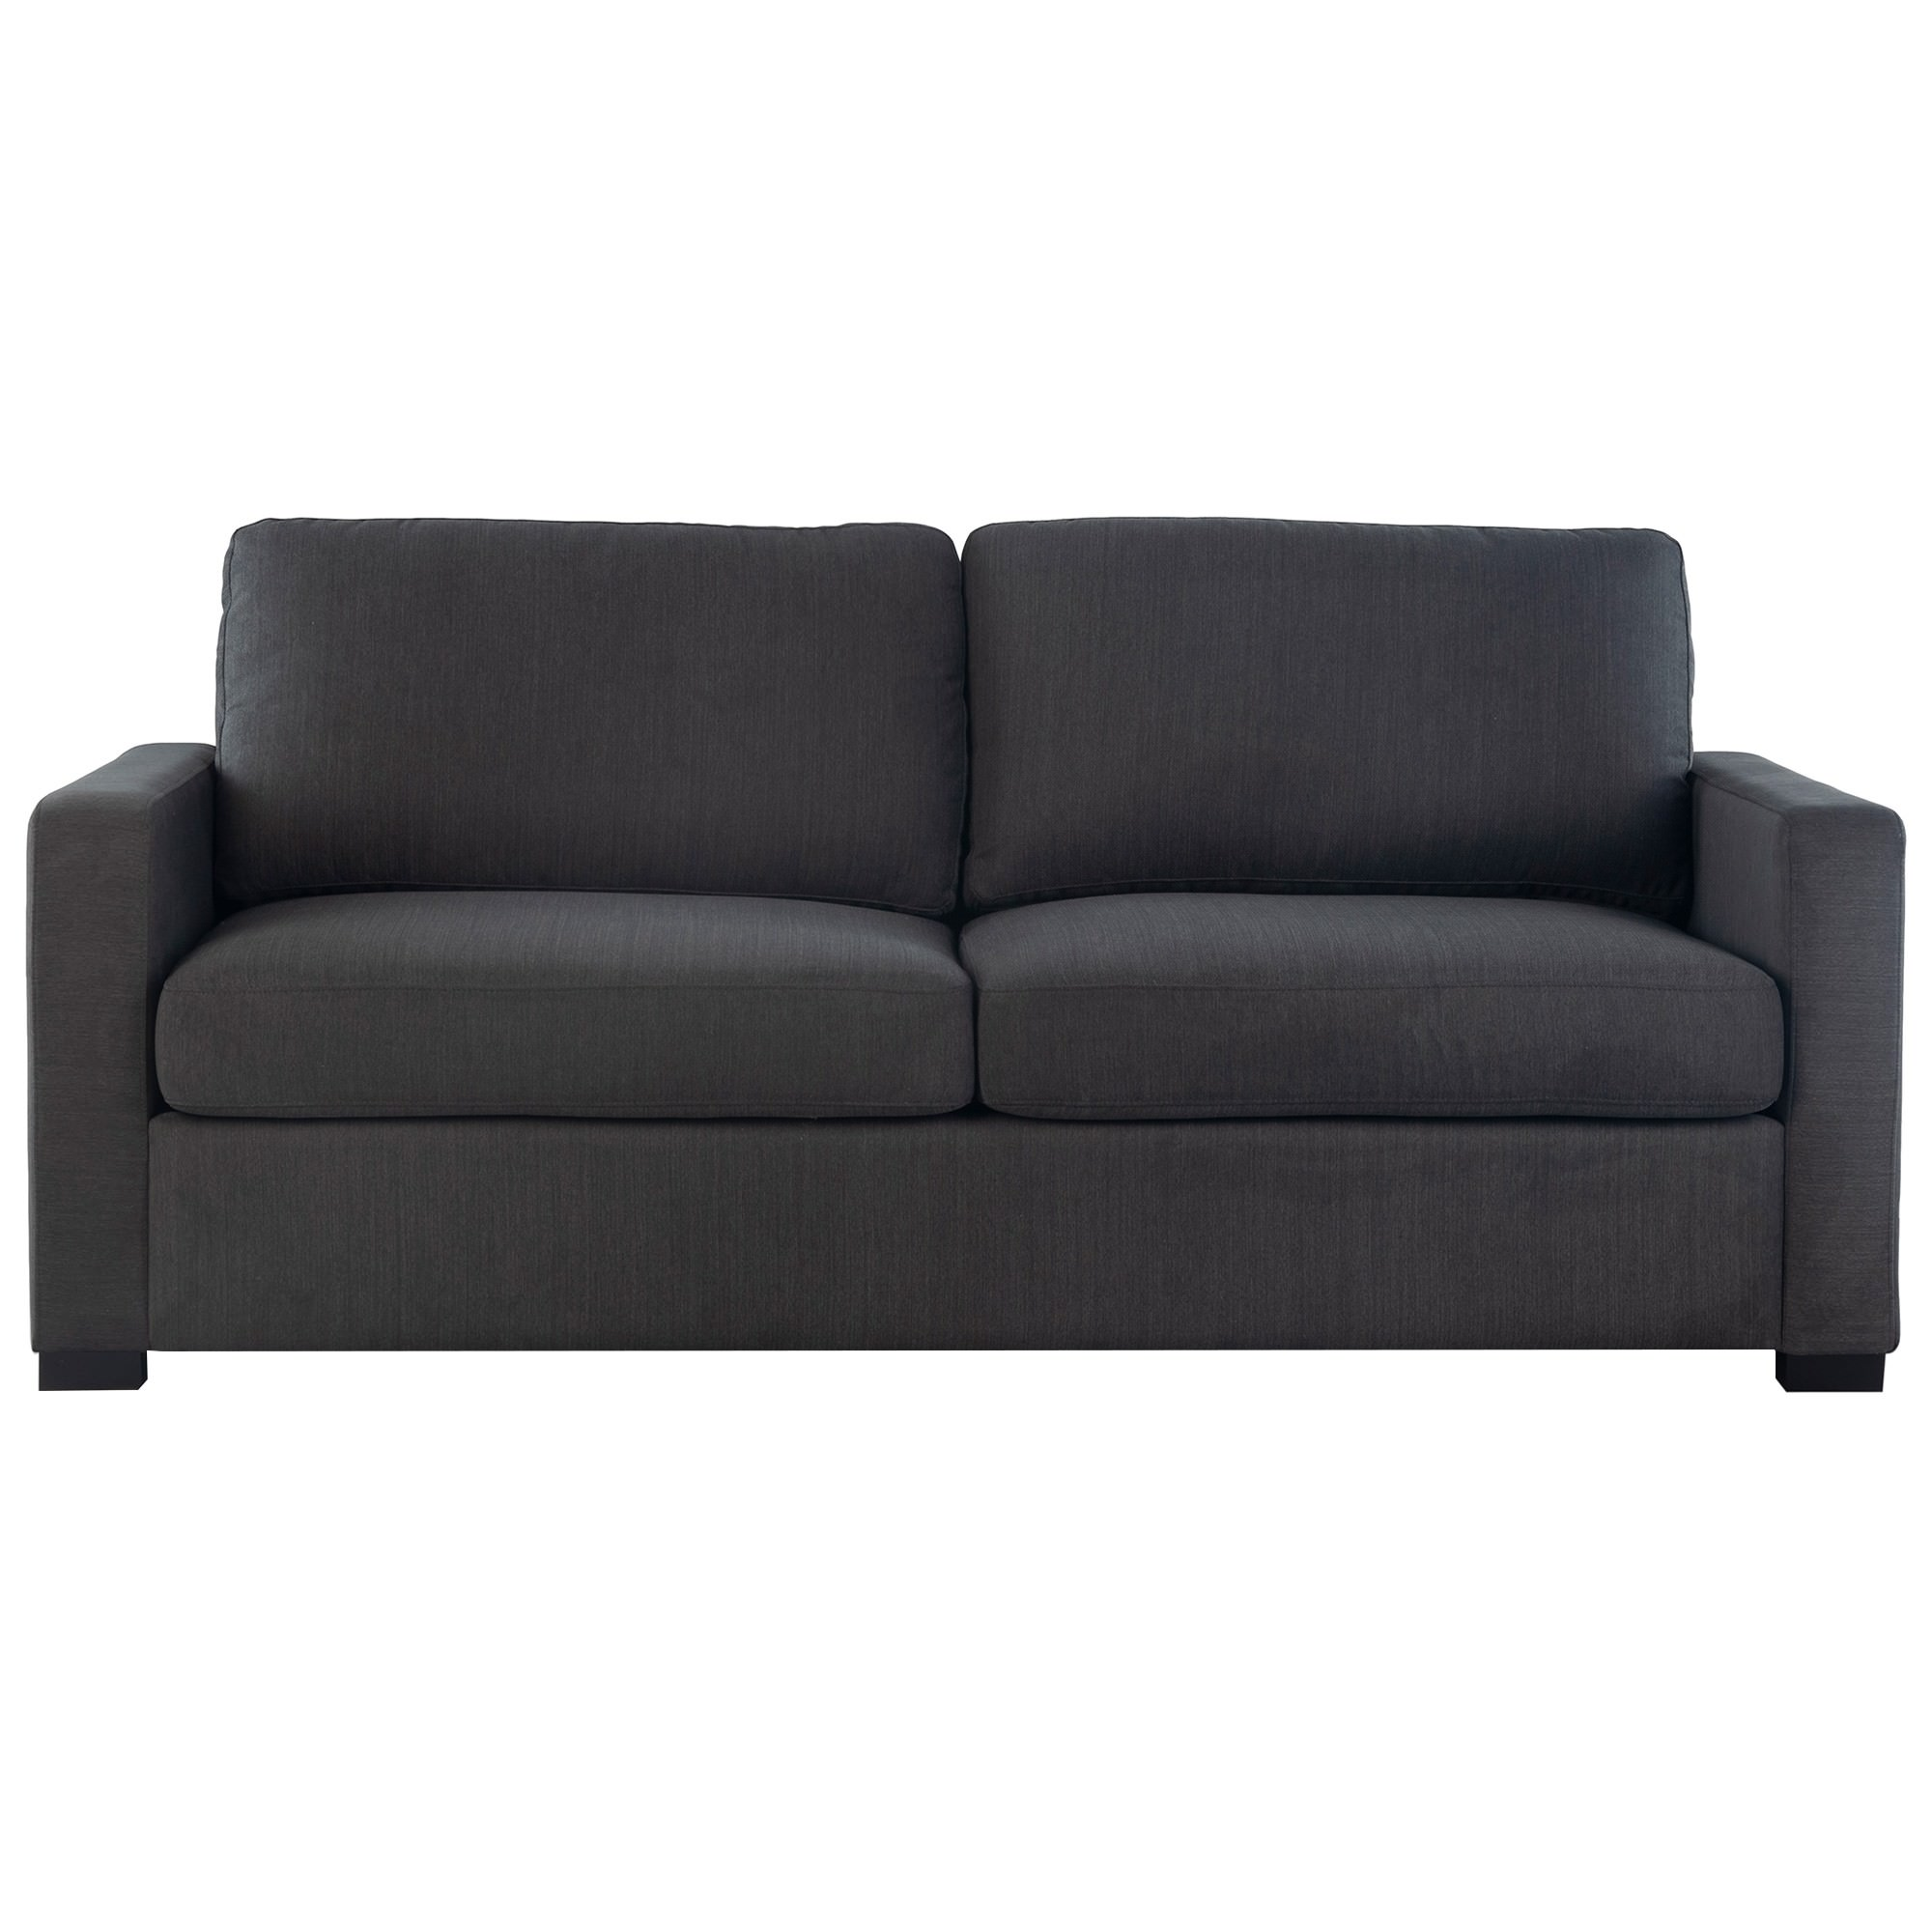 Branson Fabric Pull Out Sofa Bed, with Memory Foam ...